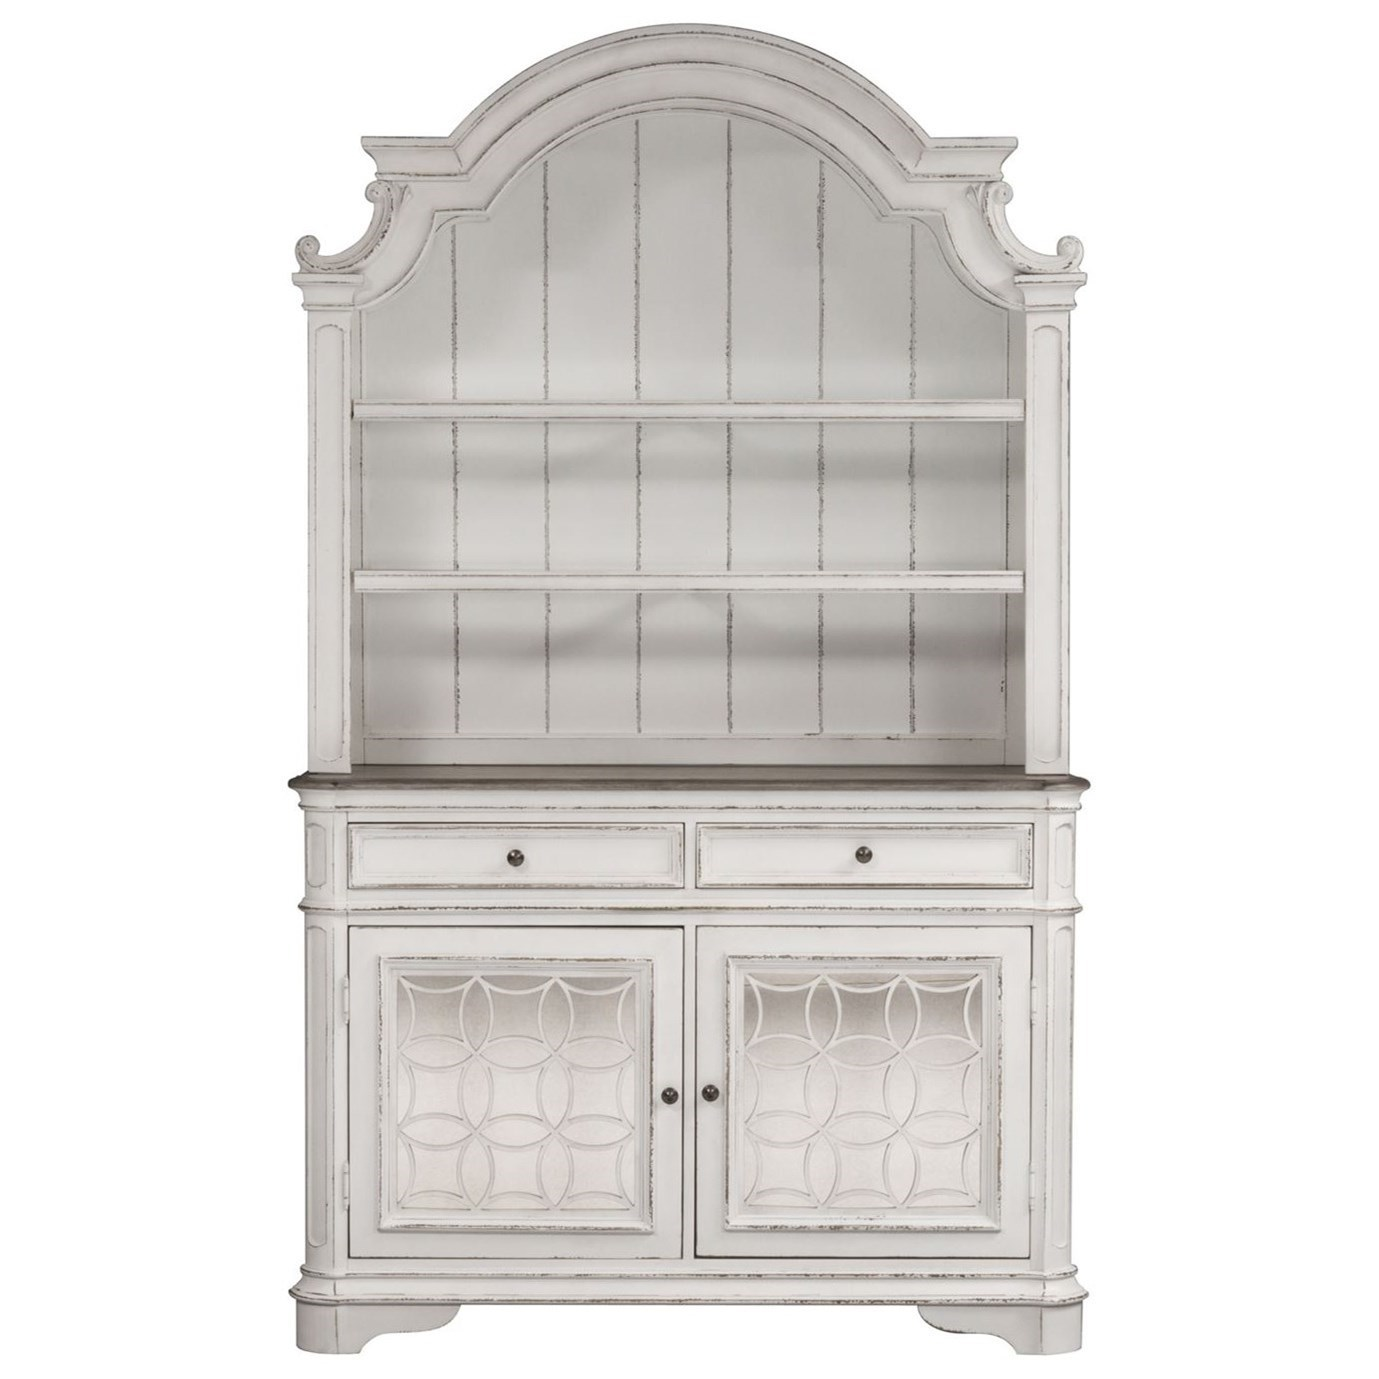 Magnolia Manor Dining Buffet and Hutch by Liberty Furniture at Bullard Furniture